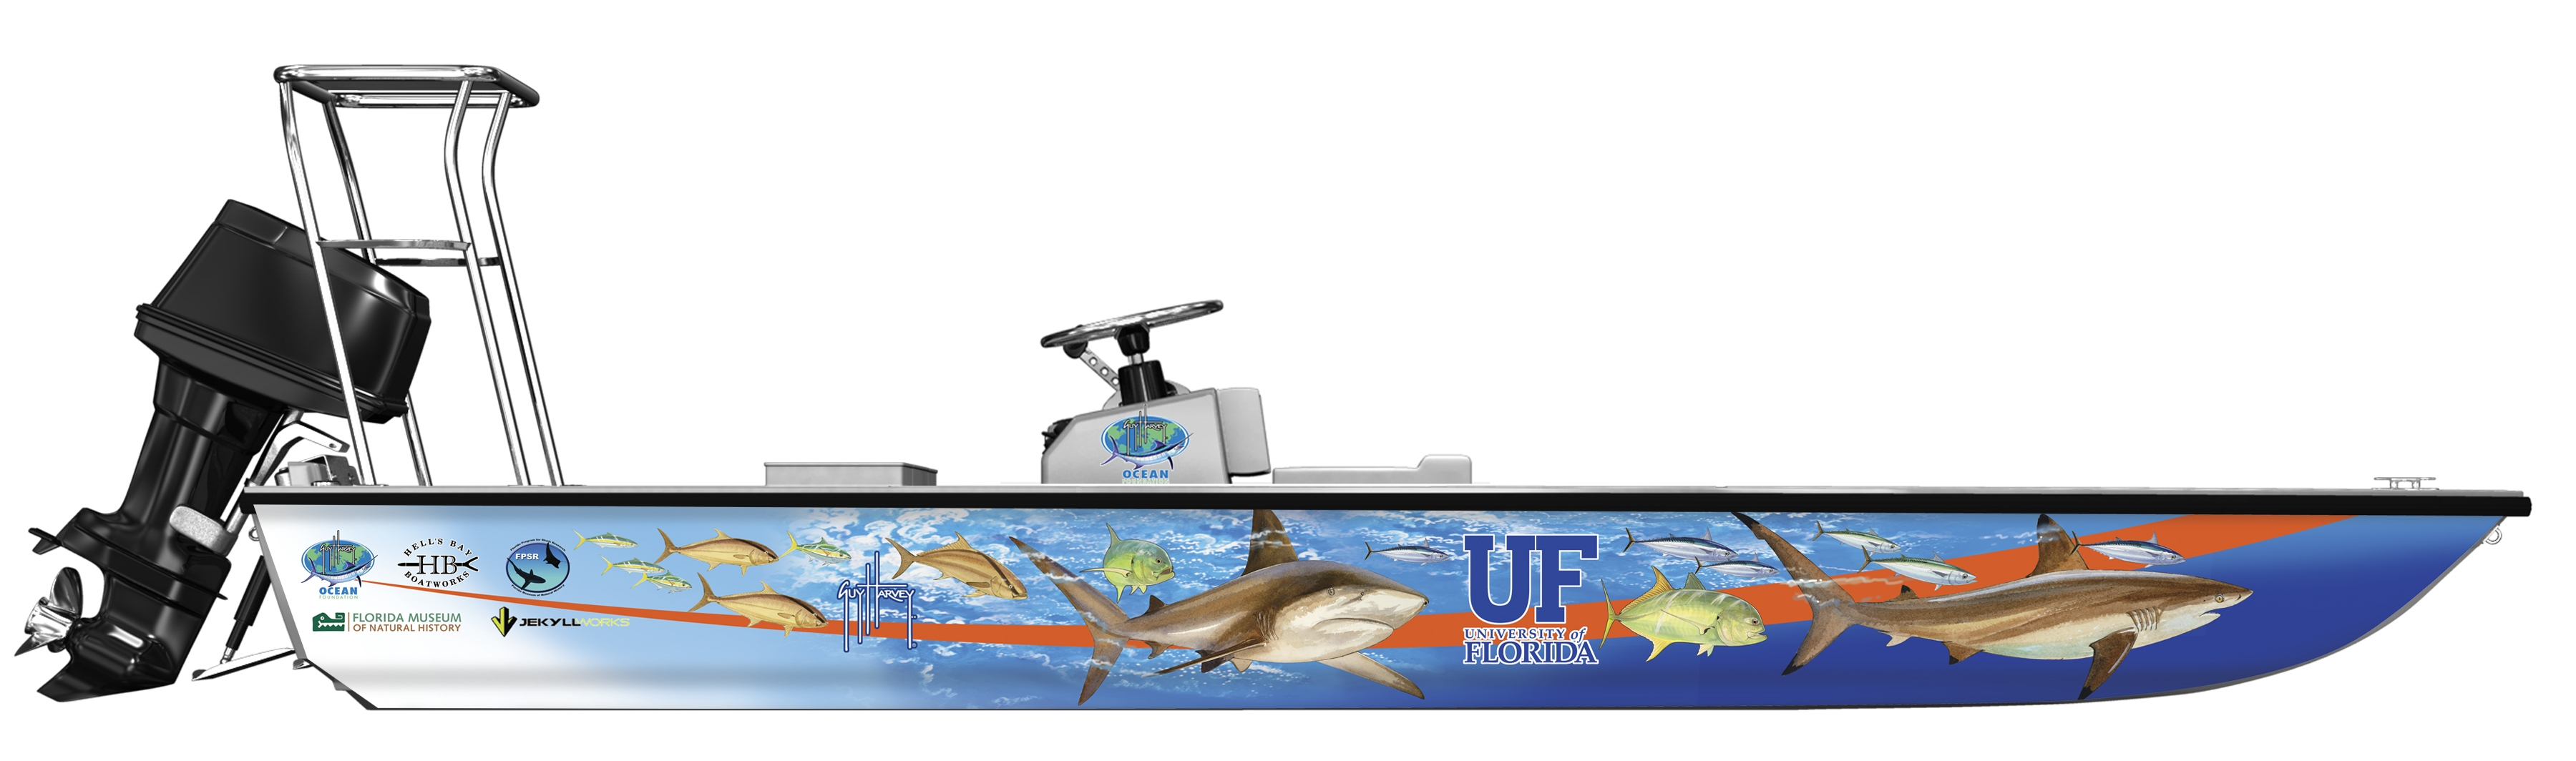 Florida Program For Shark Research Using Boat Provided By